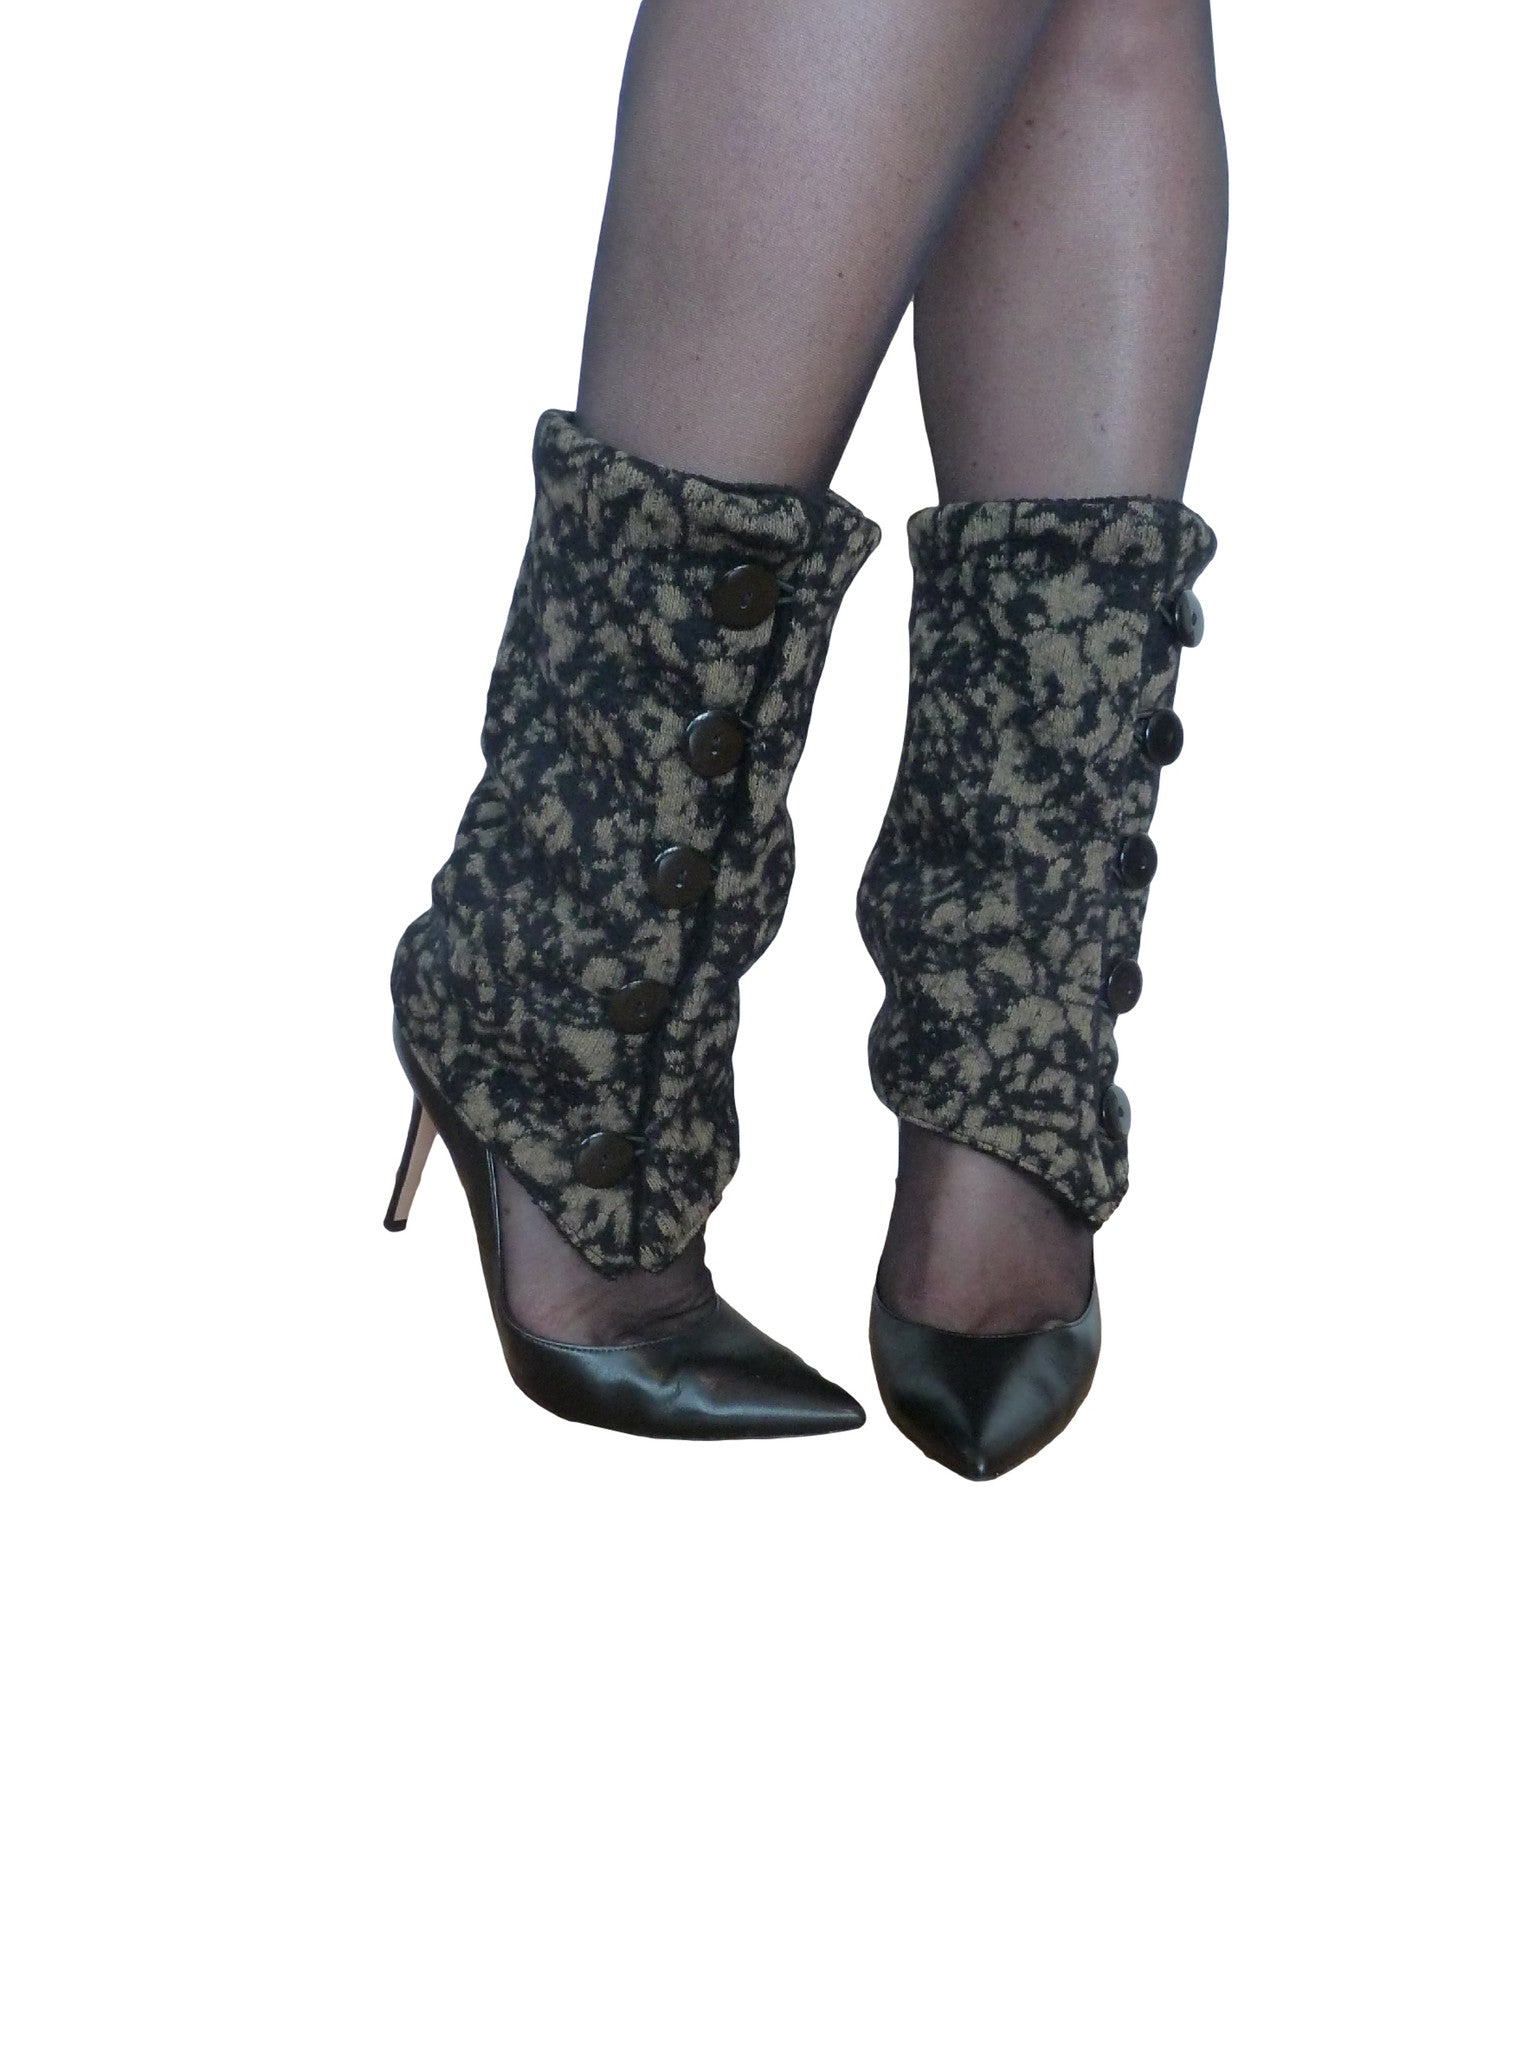 Khaki Flowers Leg Warmers